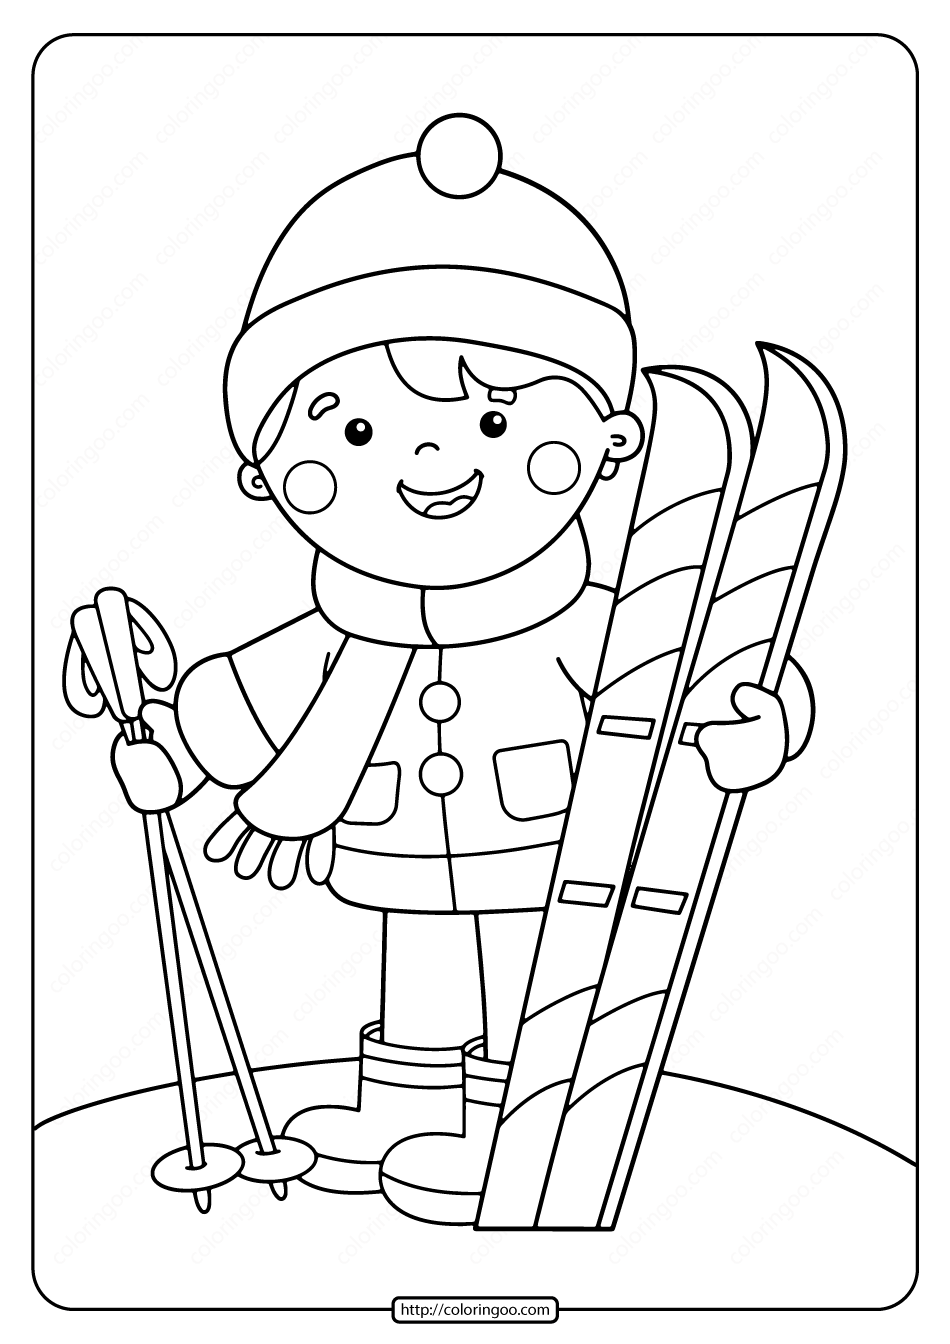 free boy coloring pages free printable boy coloring pages for kids free coloring pages boy